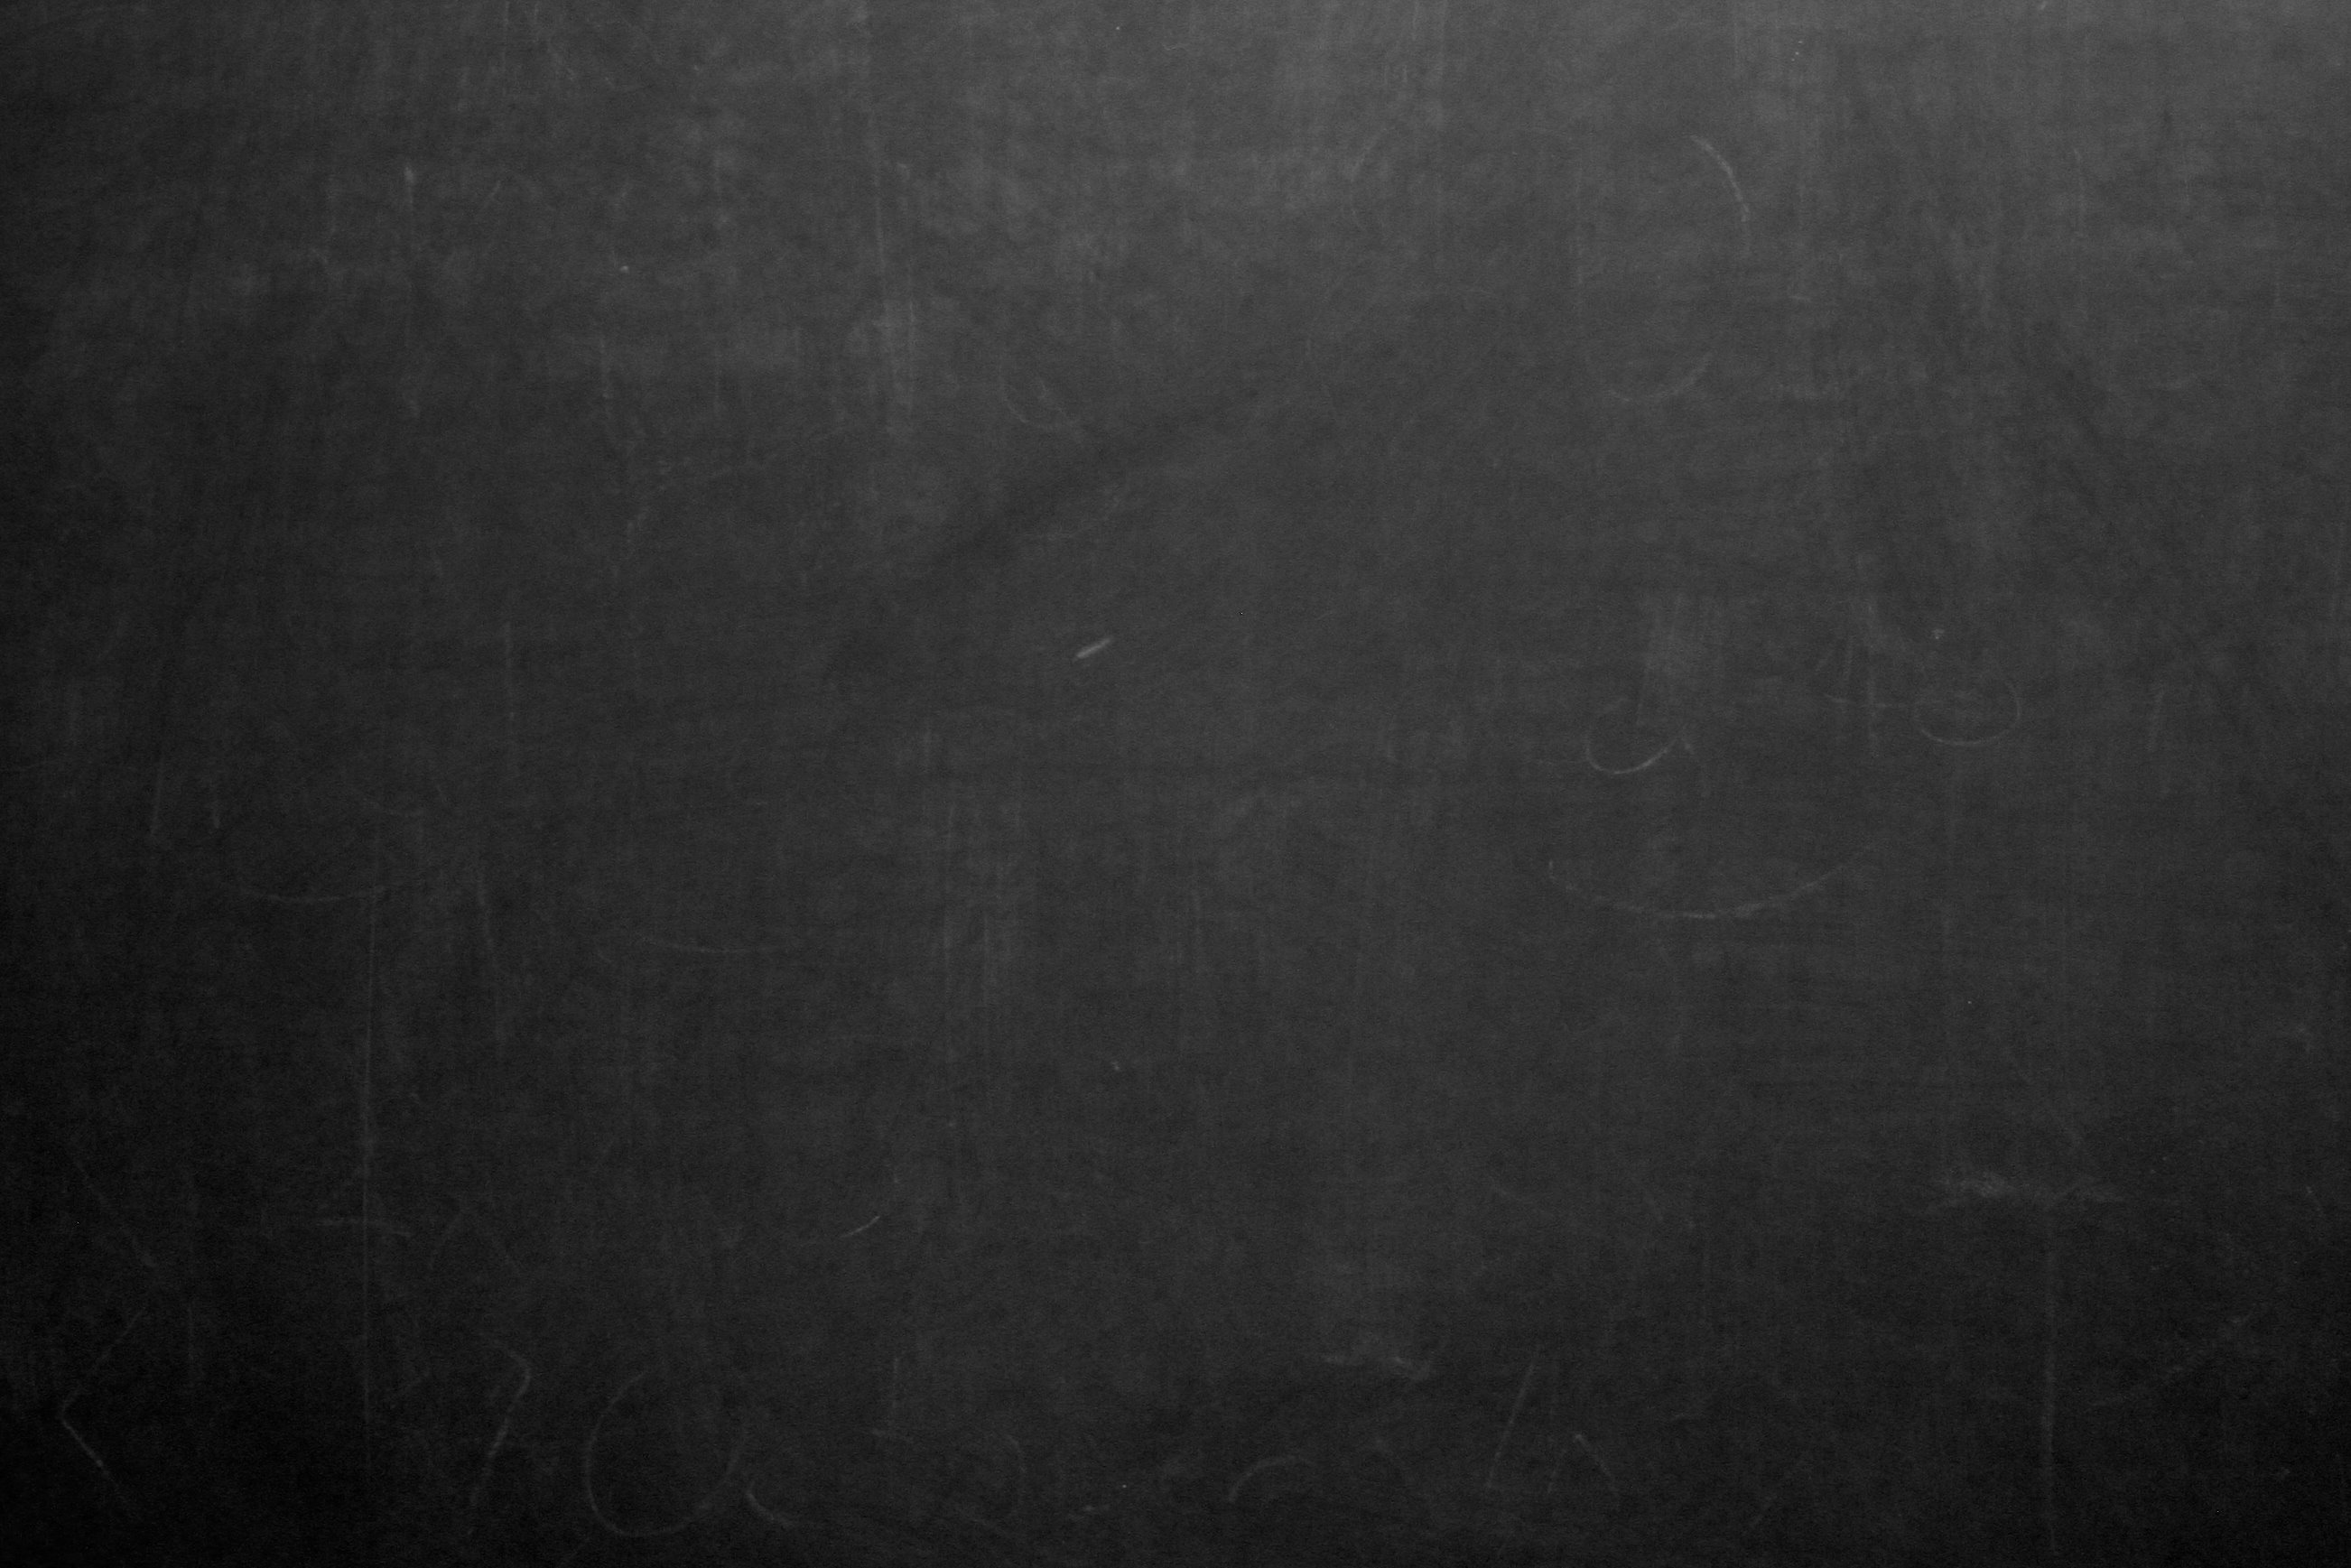 3d Wallpaper Images Free Download Free Chalkboard Backgrounds Pixelstalk Net